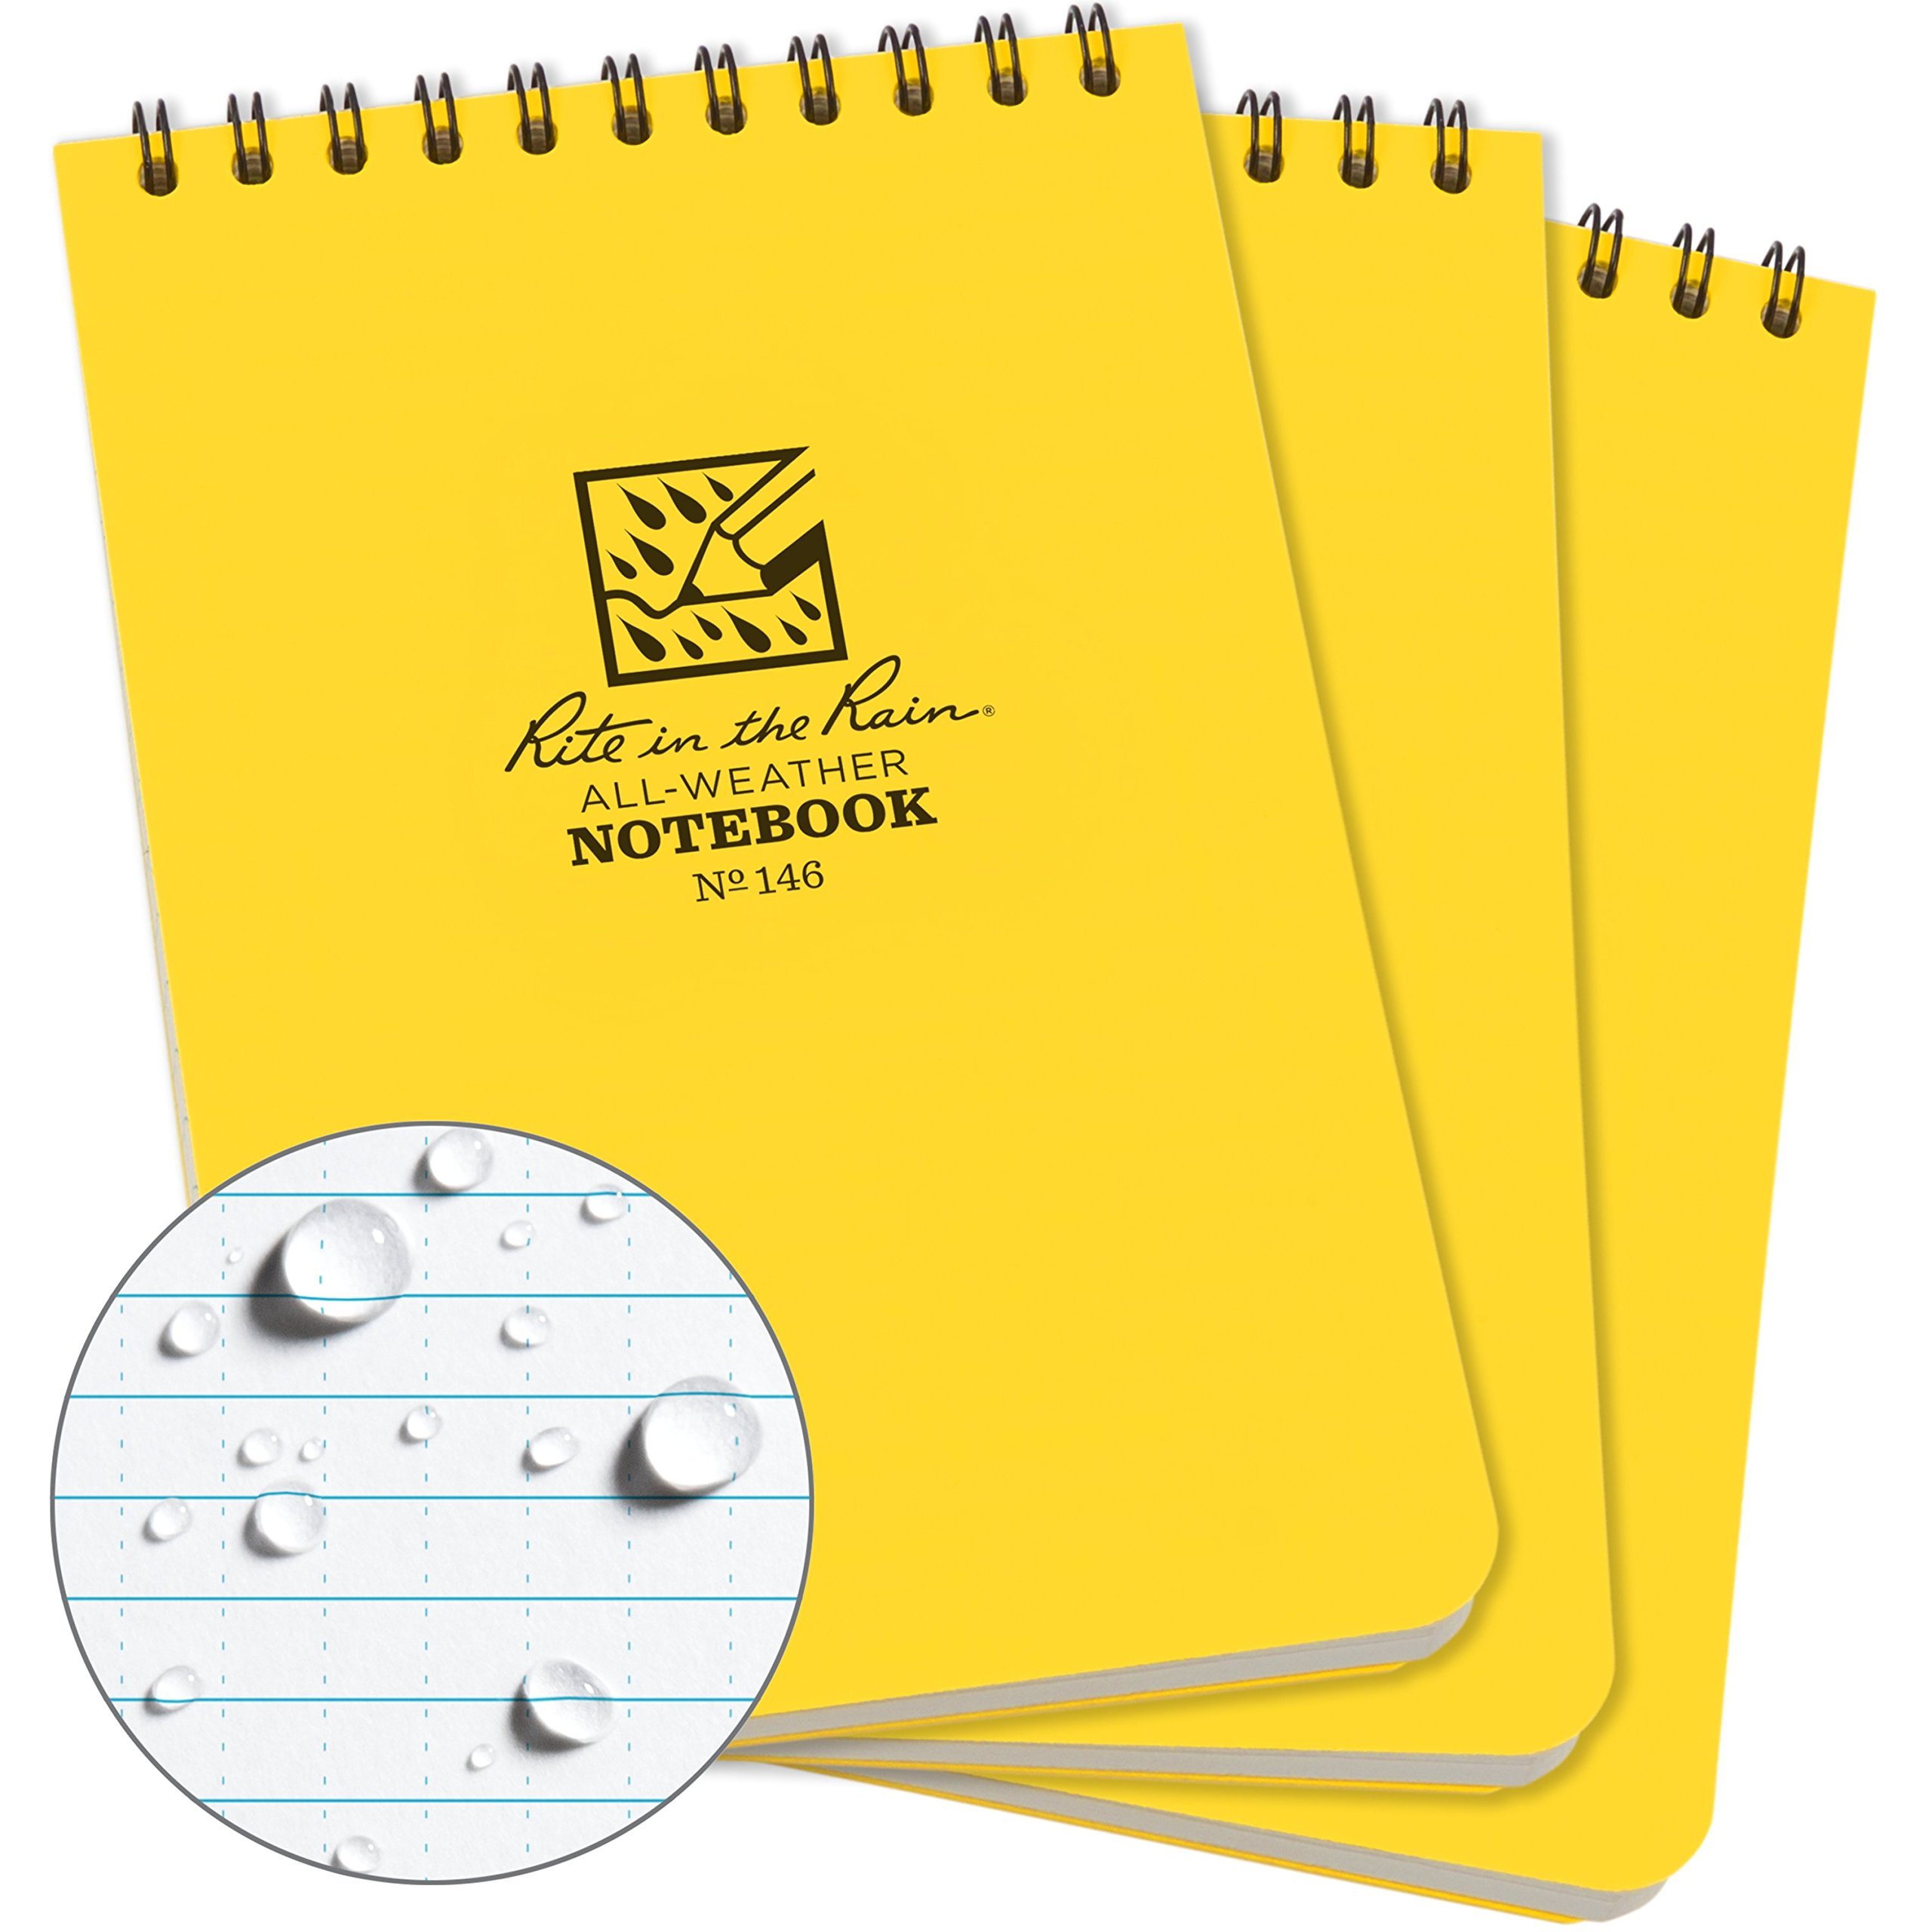 Rite in the Rain Weatherproof Top-Spiral Notebook, 4'' x 6'', Yellow Cover, Universal Pattern, 3 Pack (No. 146-3)